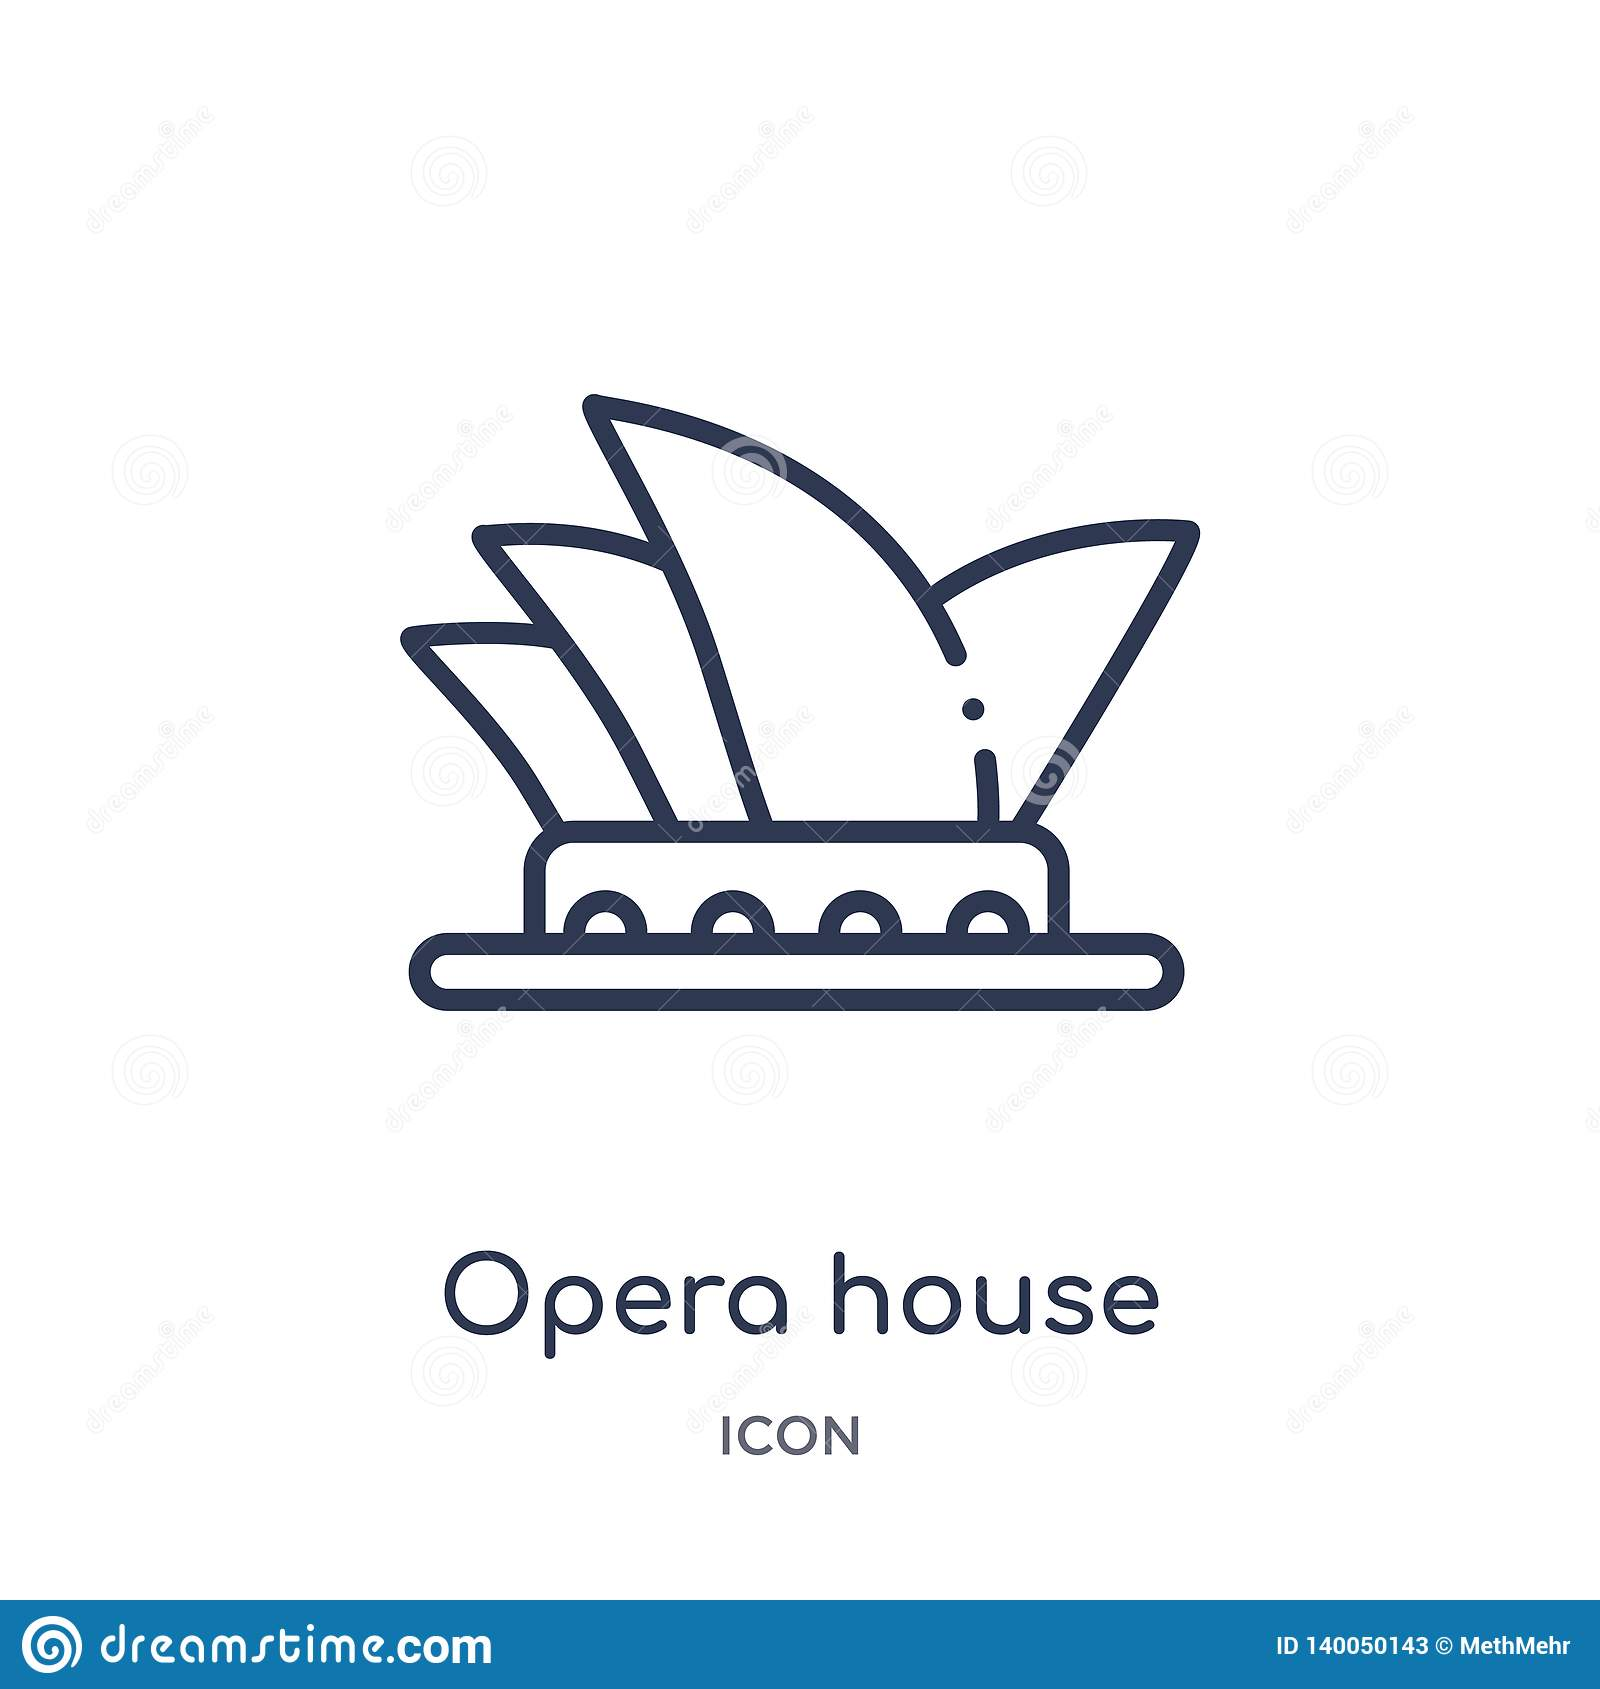 linear opera house icon buildings outline collection thin line vector isolated white background trendy illustration 140050143 - 37+ Outline Picture Of Sydney Opera House  Images